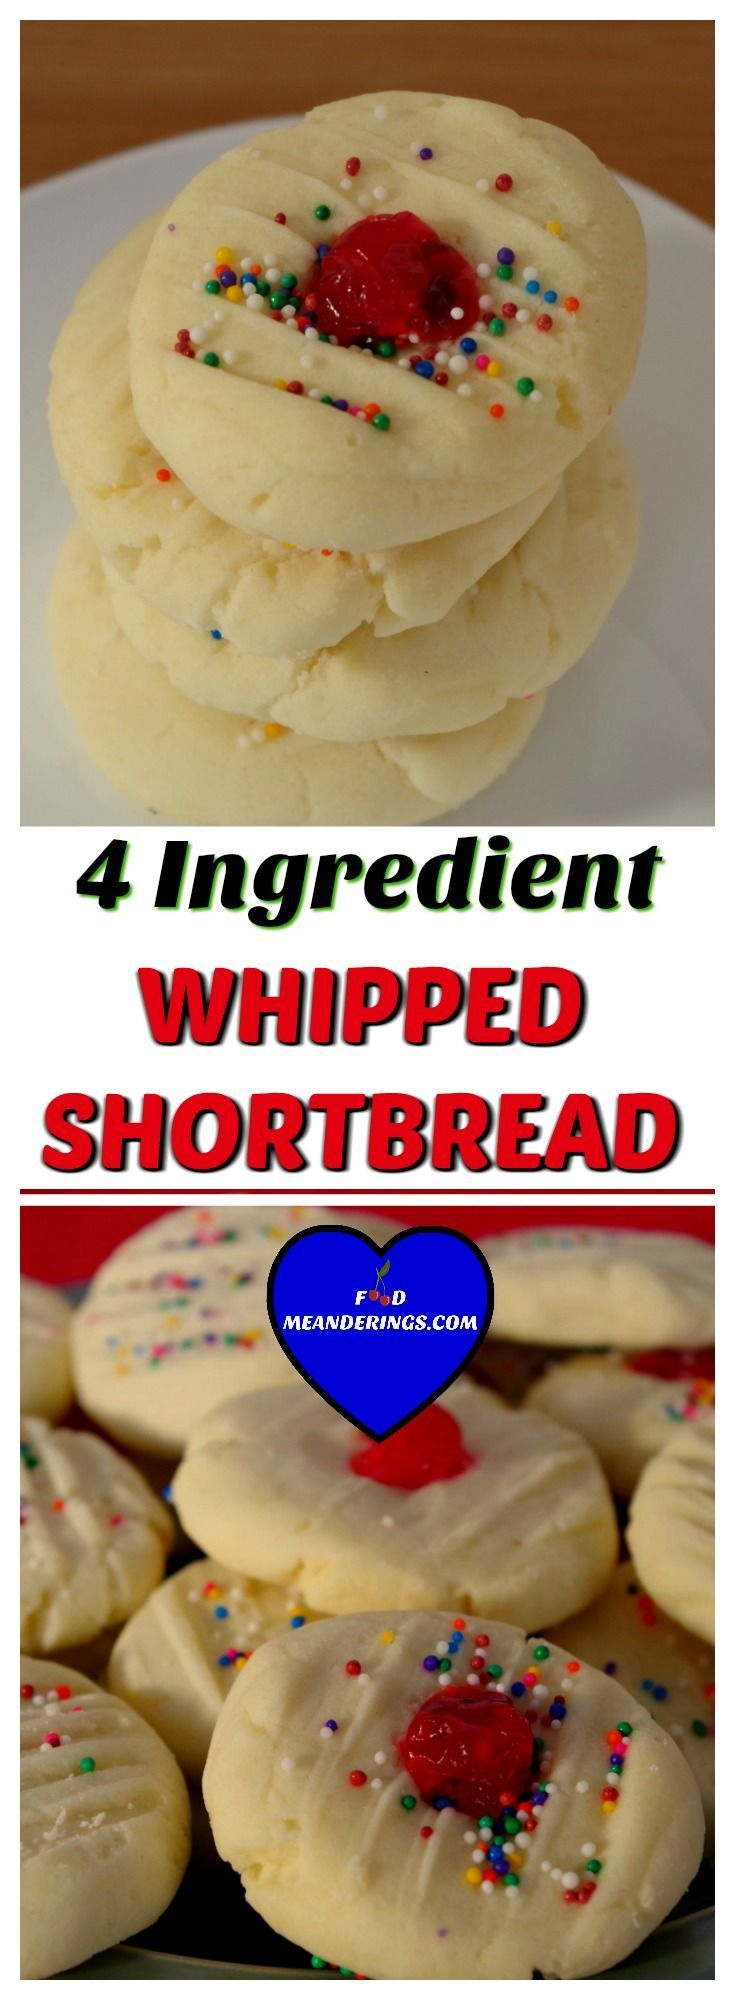 Amazing, melt-in-your-mouth, quick and easy whipped shortbread. All you need is 4 ingredients, some sprinkles and a few minutes. #shortbread #shortbreadcookies #whippedshortbread